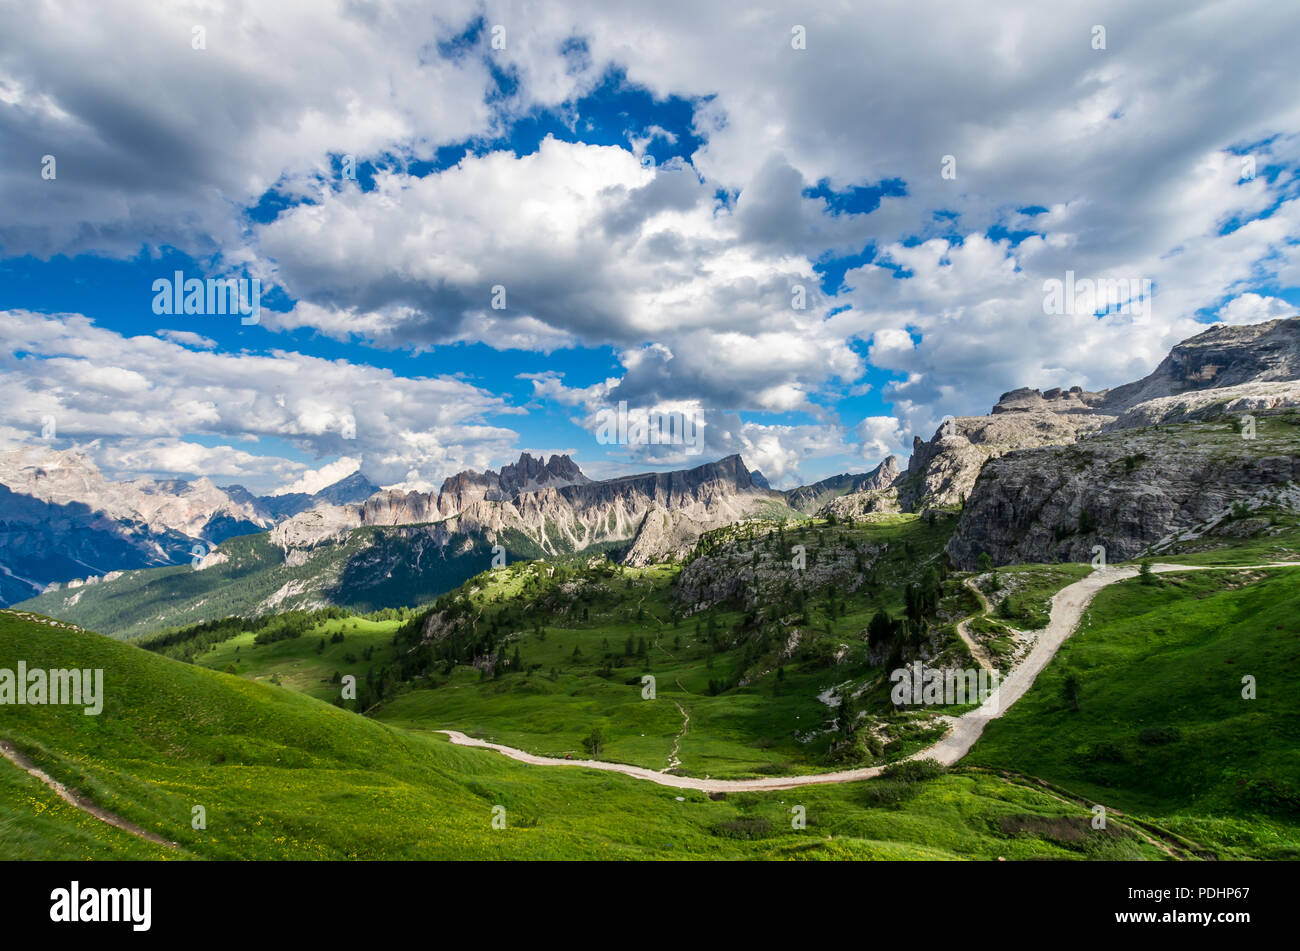 Dolomites mountains, North Italy. Scenic view in Dolomiti, Alto Adige, South Tirol - Stock Image